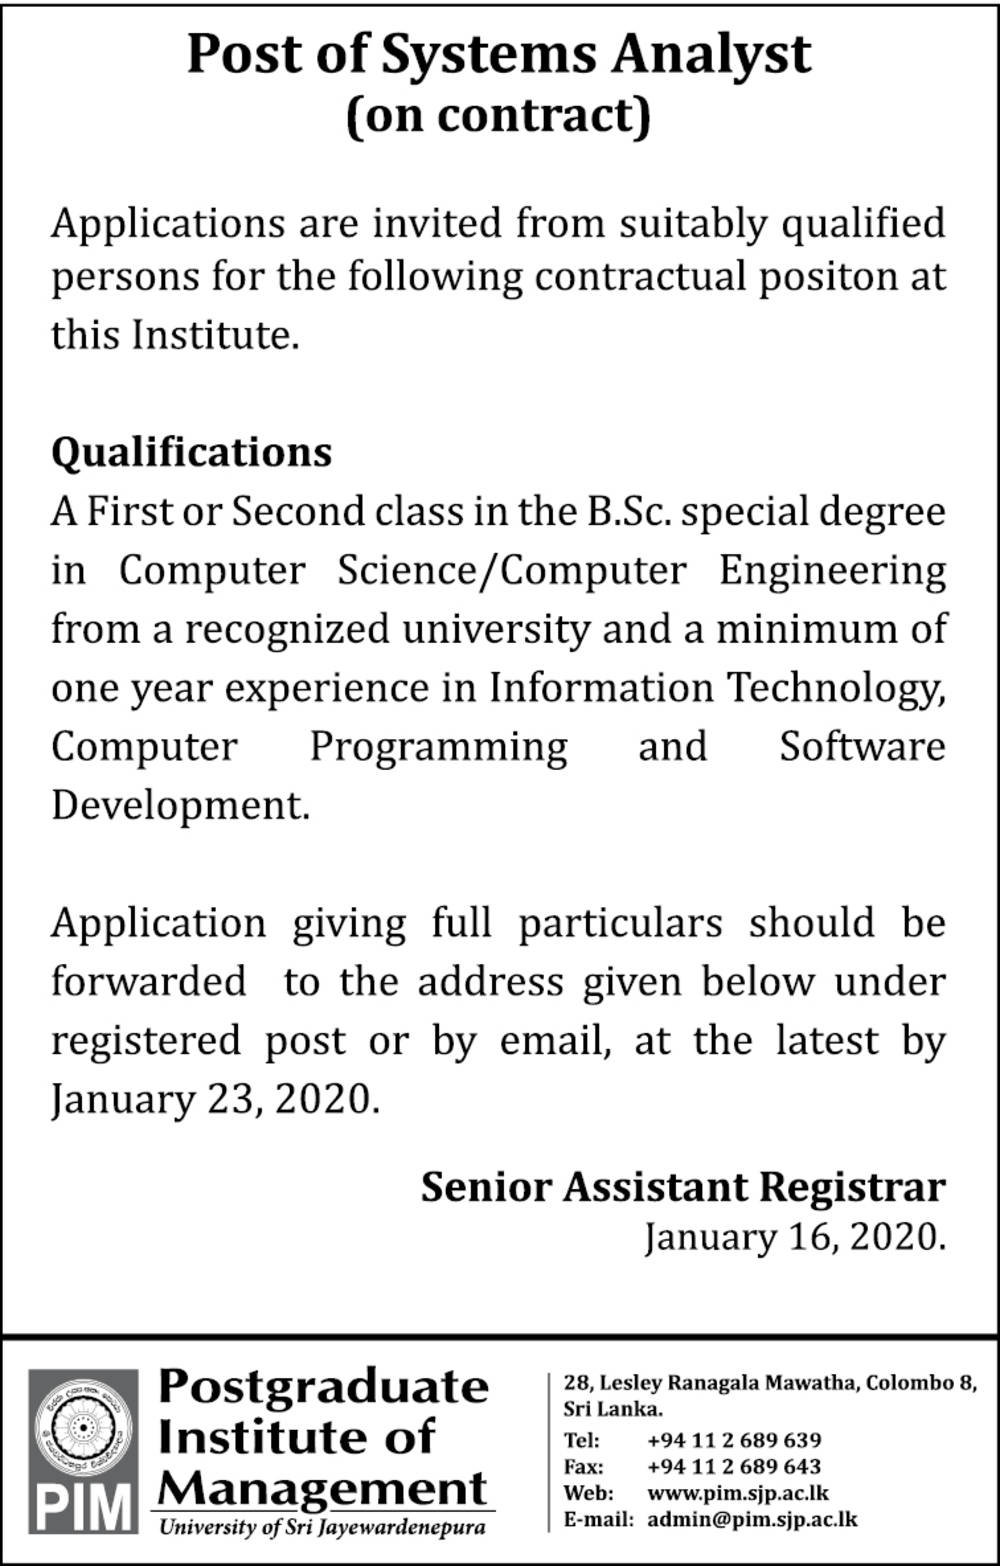 Systems Analyst - Postgraduate Institute of Management - University of Sri Jayewardenepura